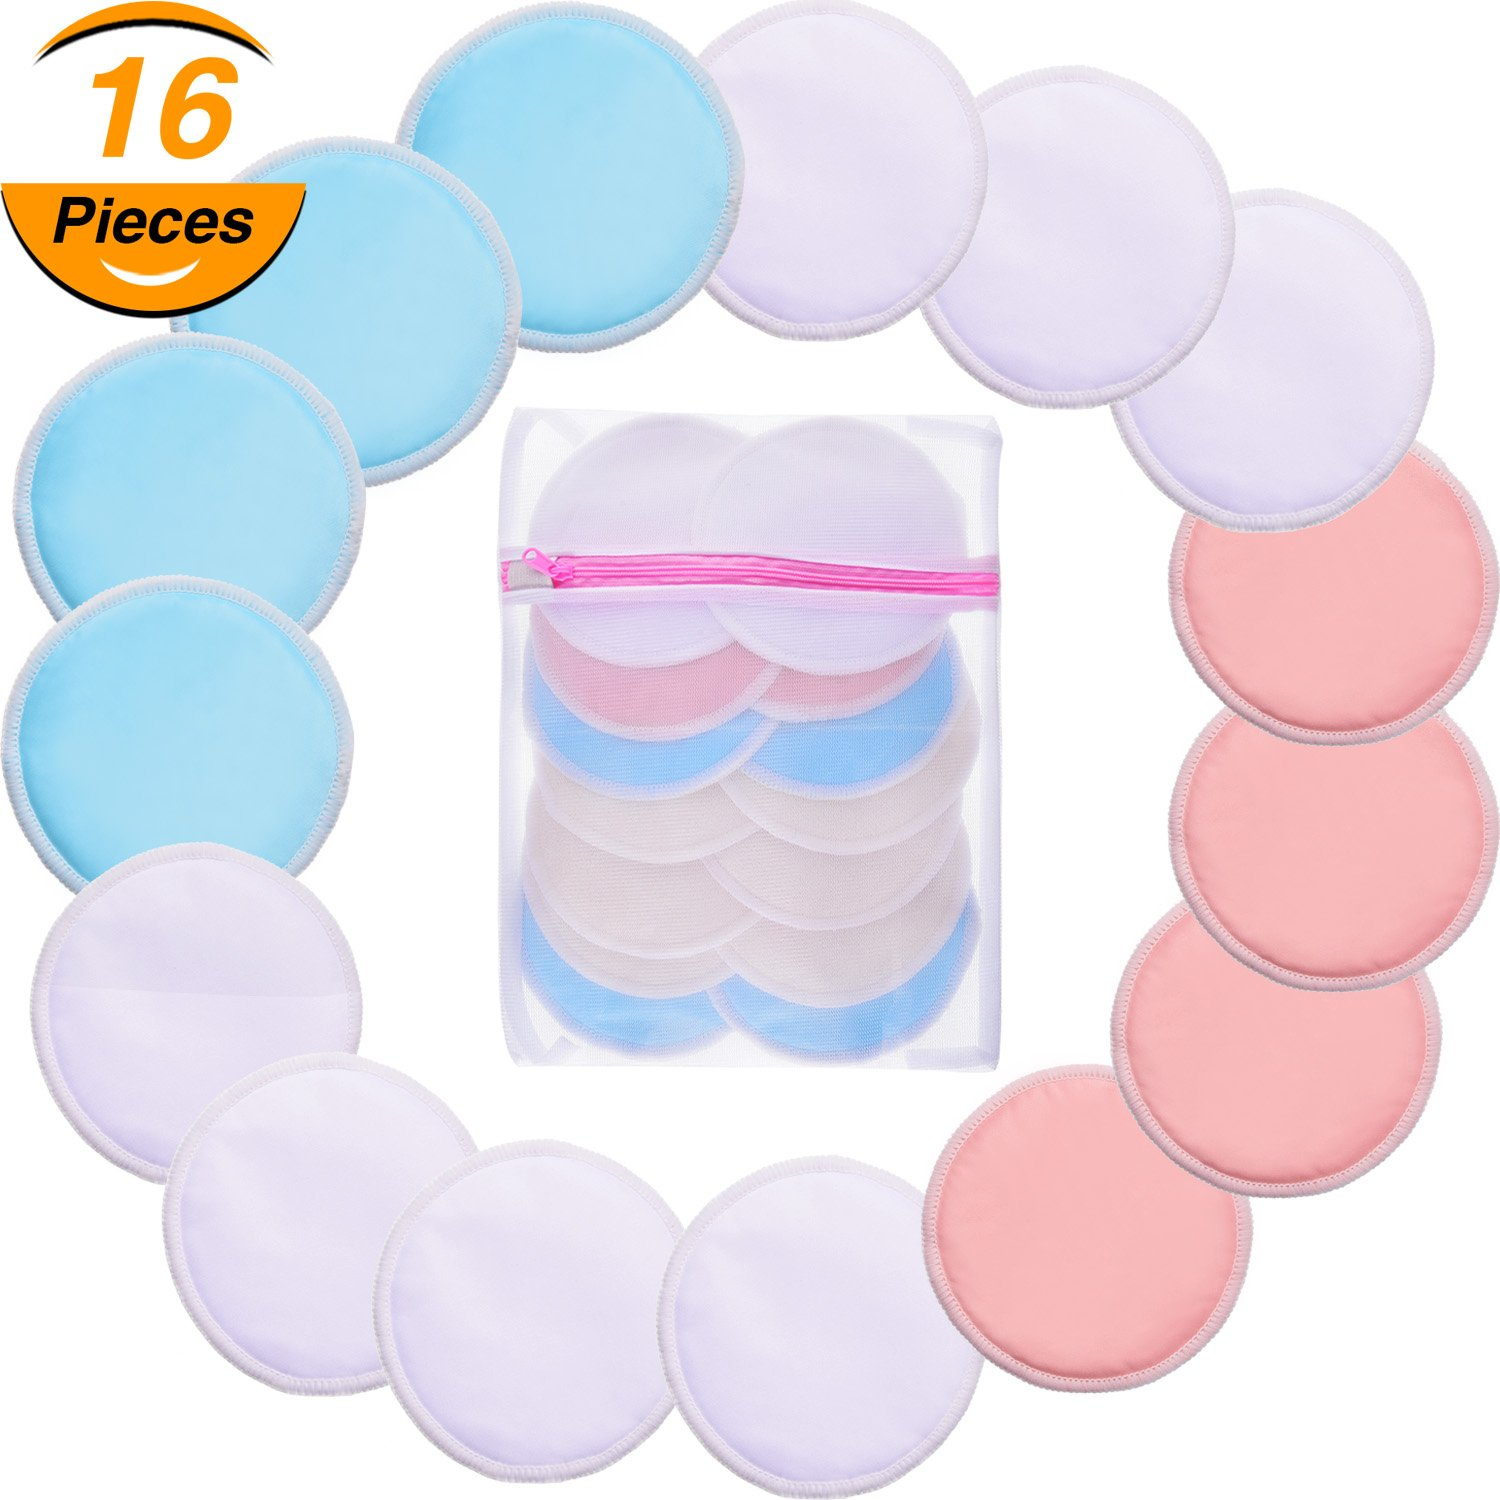 TecUnite Bamboo 15 Pack Makeup Soft Remover Pads with 1 Laundry Bag, Makeup Remover Cloth, Chemical Free Cleansing Towel Wipes Face, Facial Clean Skin Care Wash Cloth Pads (Pink, Sky Blue, White)